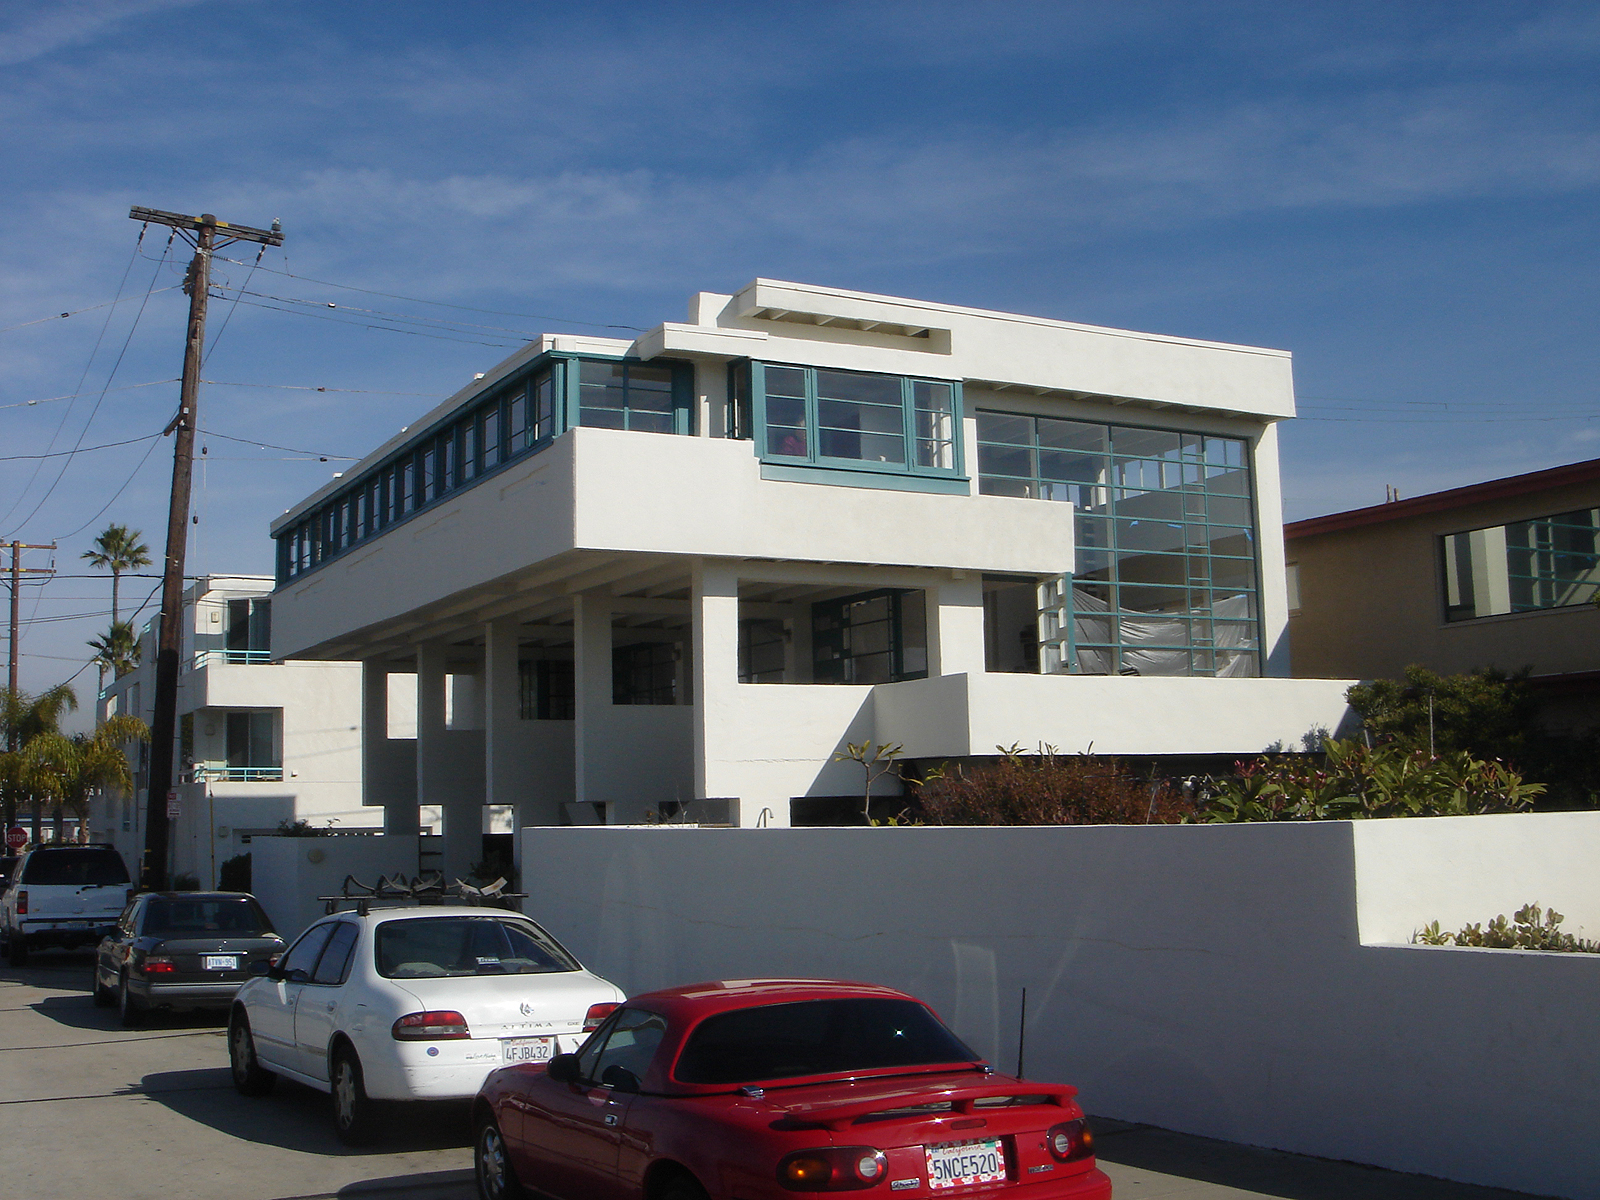 Fullsize Of Newport Beach House